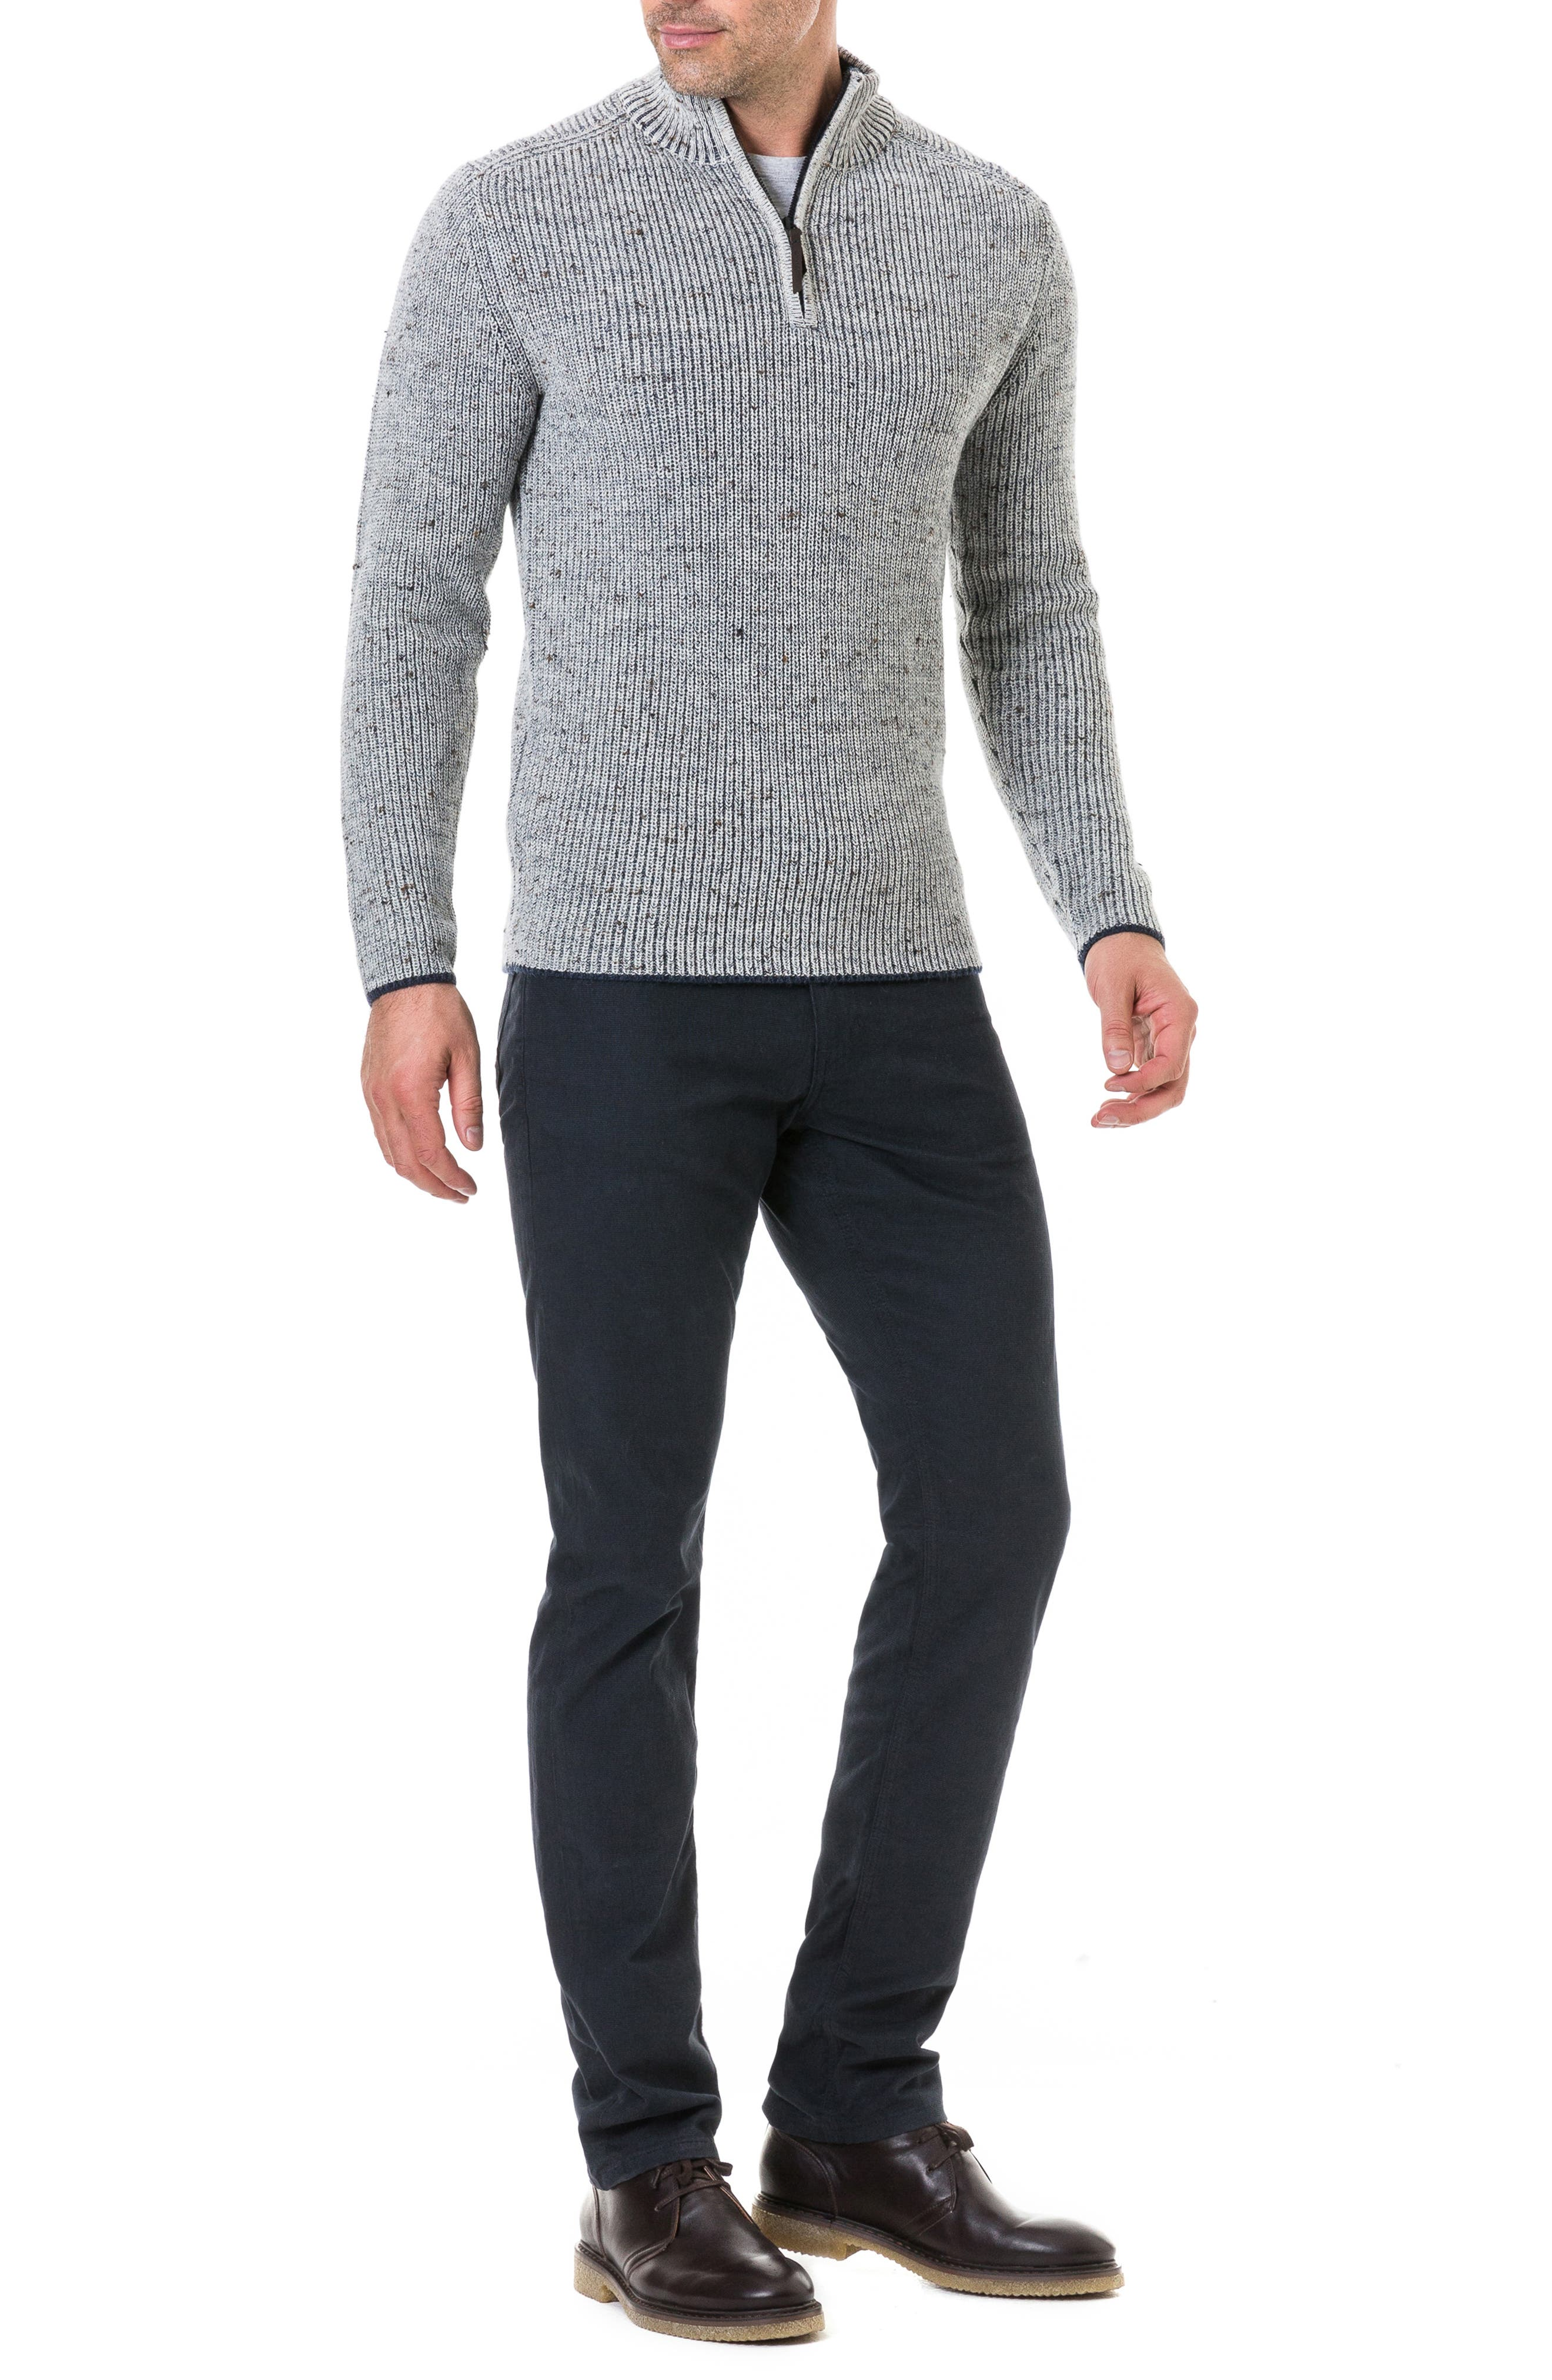 Slope Hill Wool Sweater,                             Alternate thumbnail 4, color,                             OATMEAL